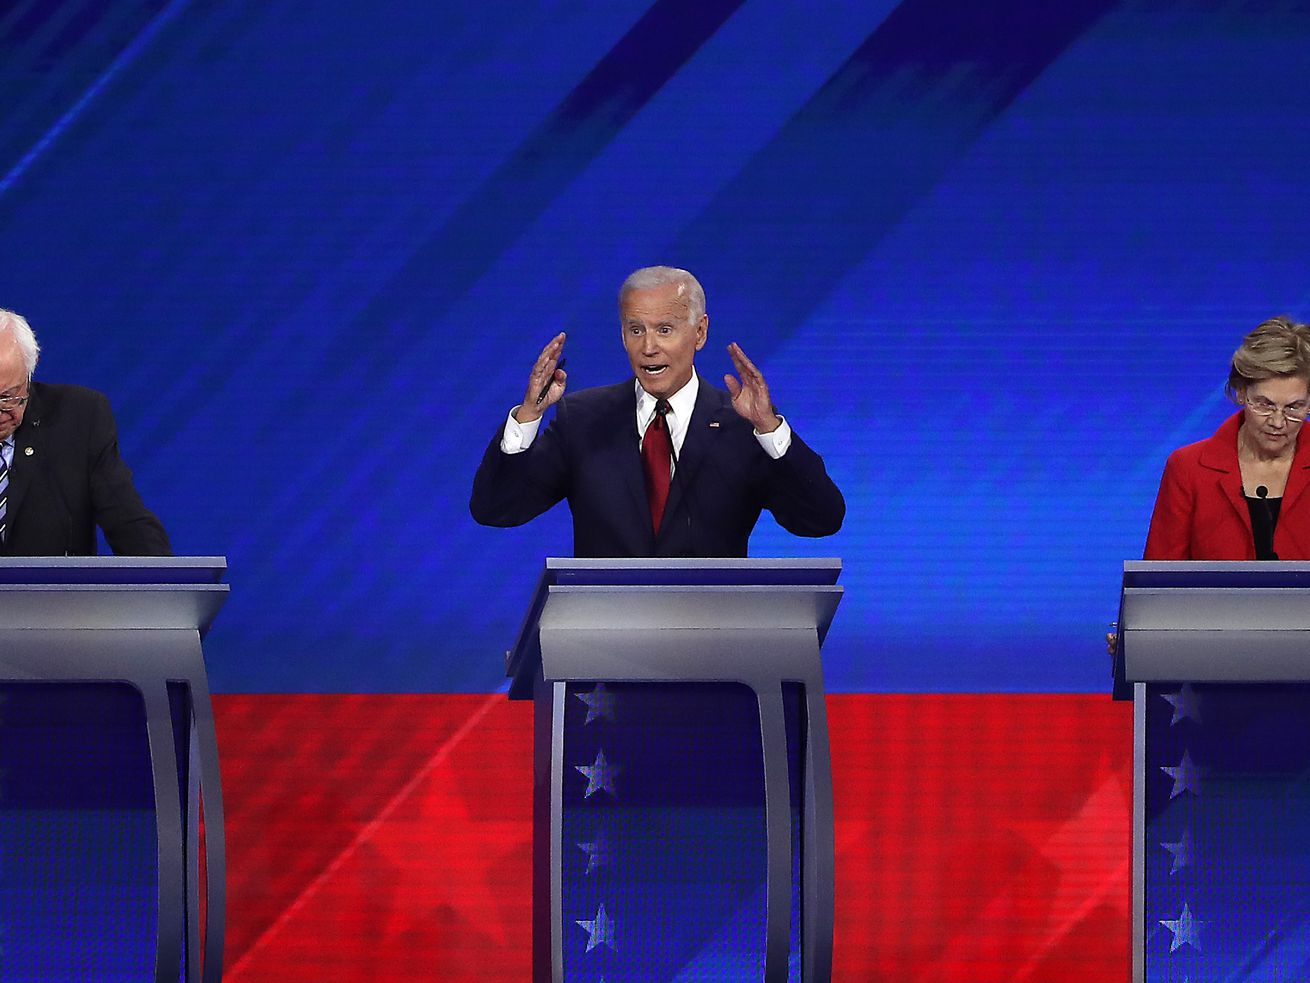 Joe Biden, at the center podium, speaks with his hands up at the Democratic debate on September 12, 2019, while Senator Bernie Sanders to his right and Senator Elizabeth Warren to his left look down at their podiums.